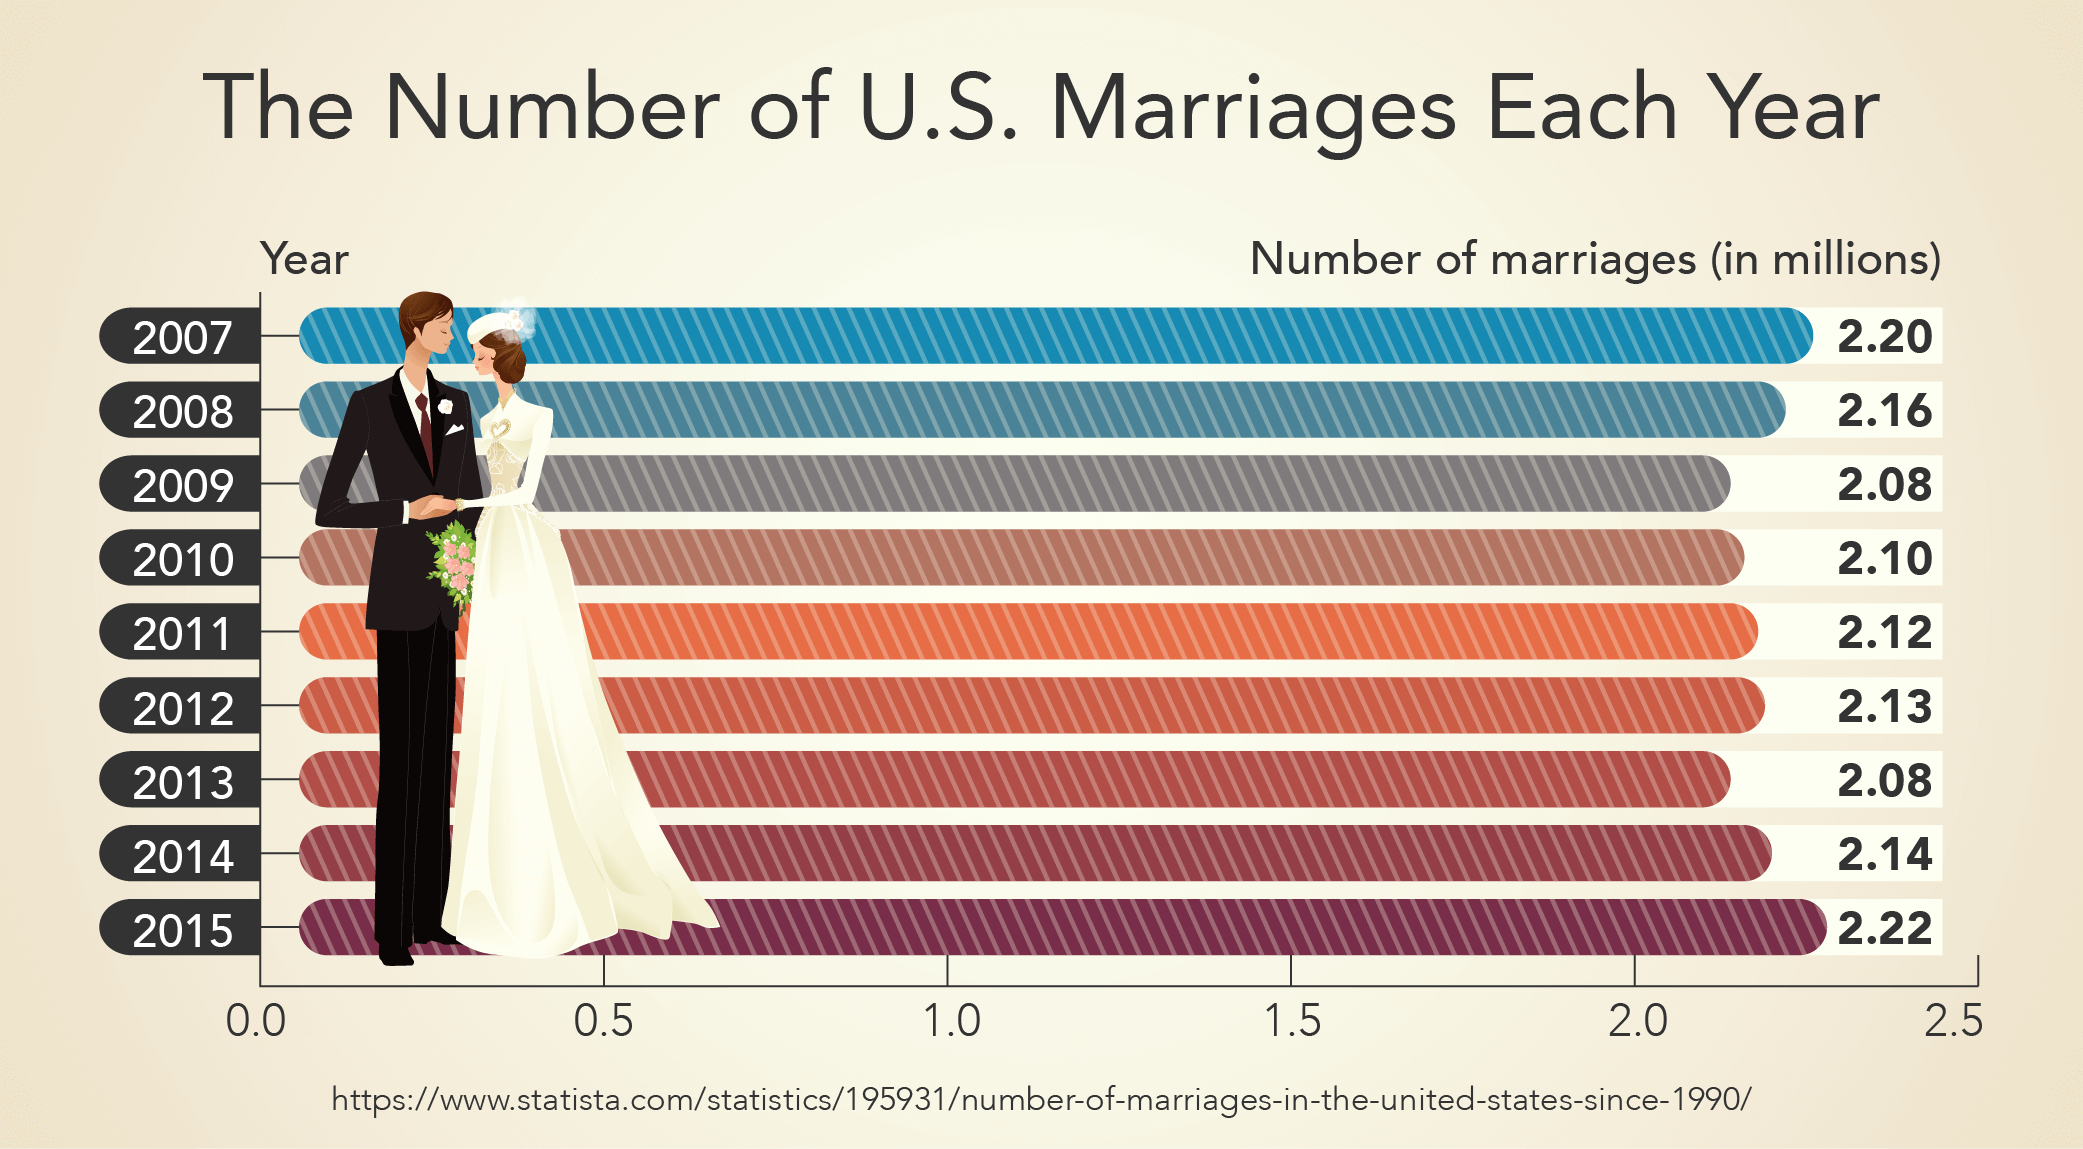 The Number of U.S. Marriages Each Year